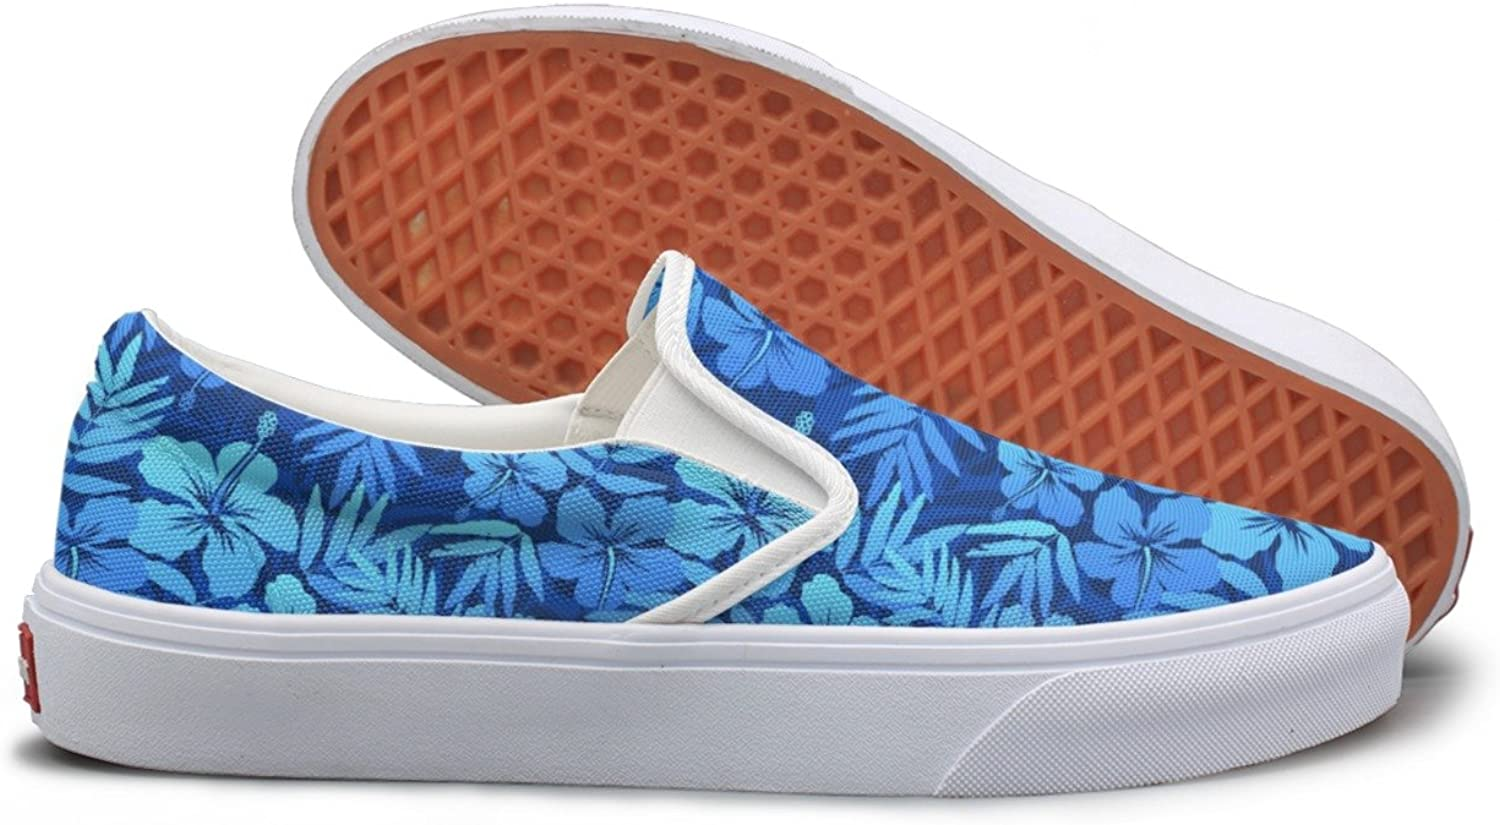 bluee Tropical Flowers Slip On Canvas shoes For Women Wide